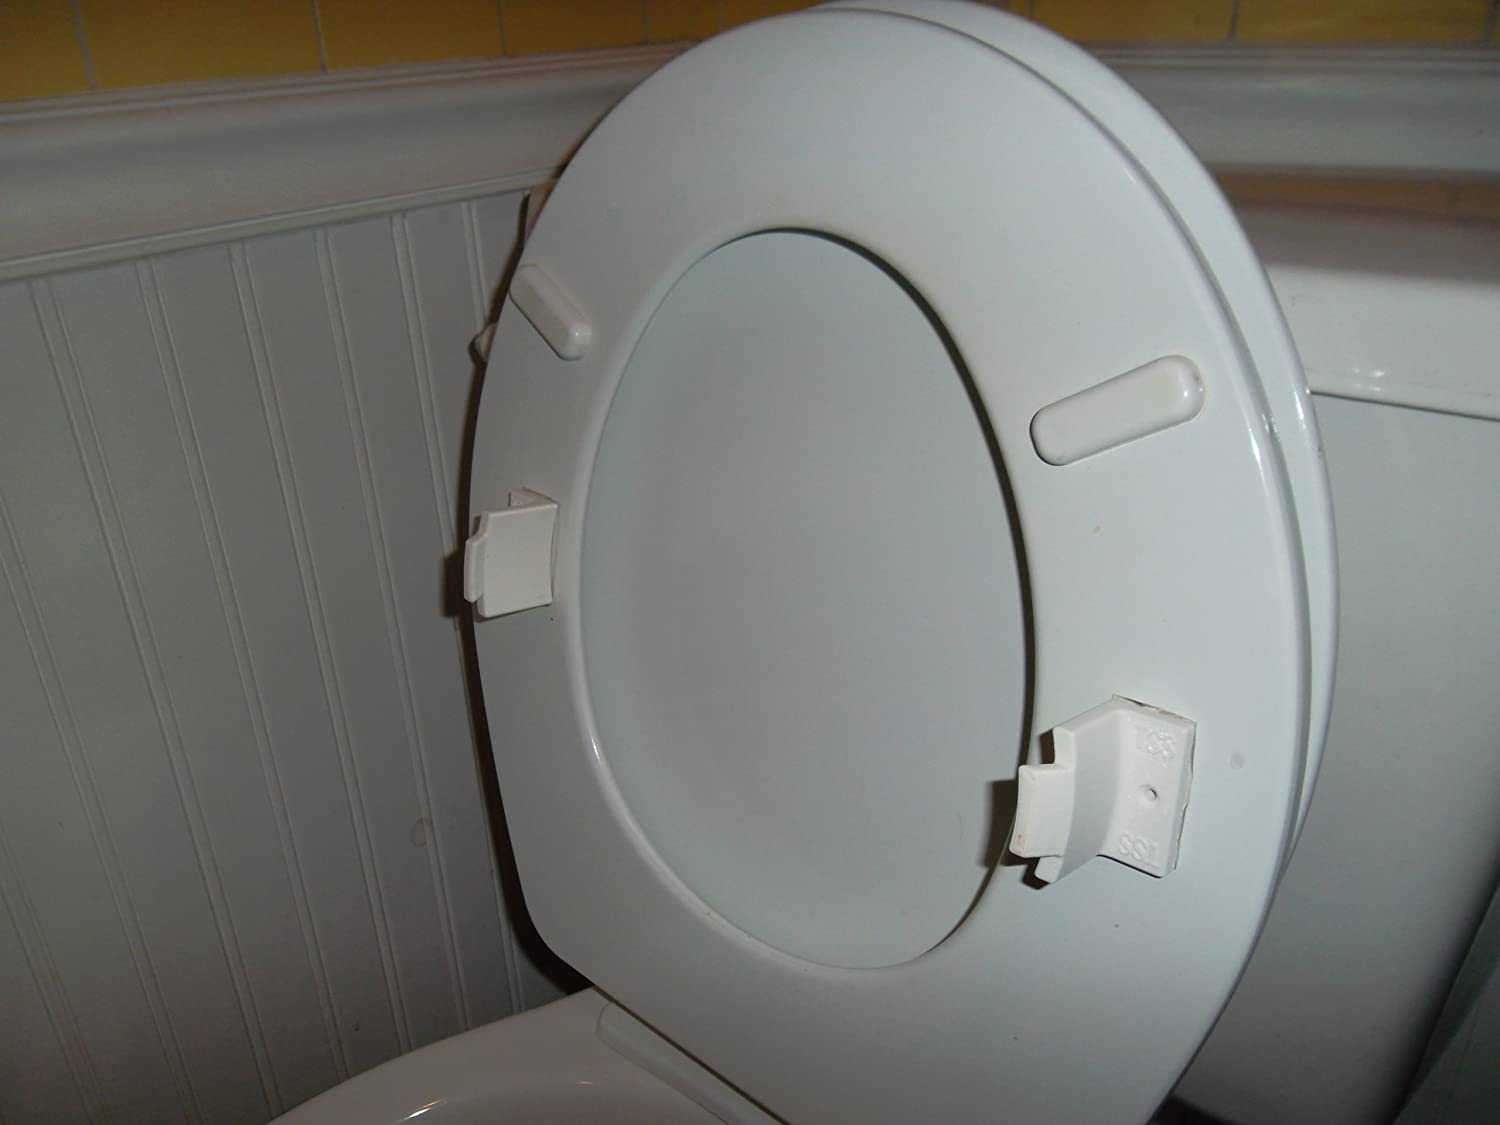 Toilet Seat Stabilizers